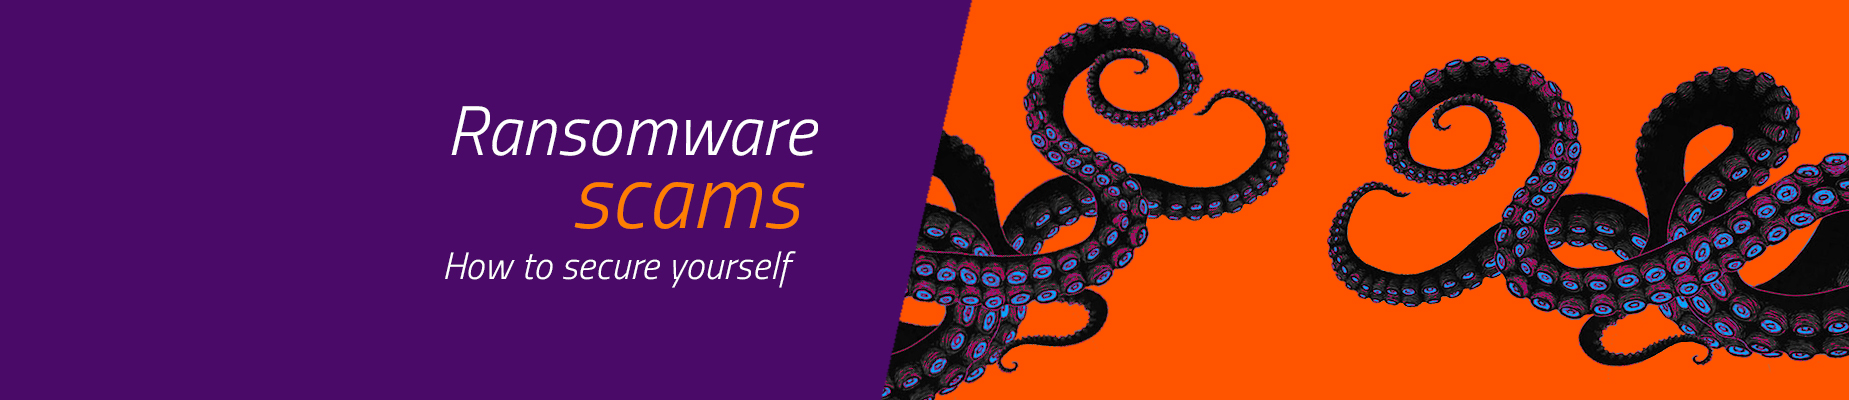 Ransomware scams – How to secure yourself